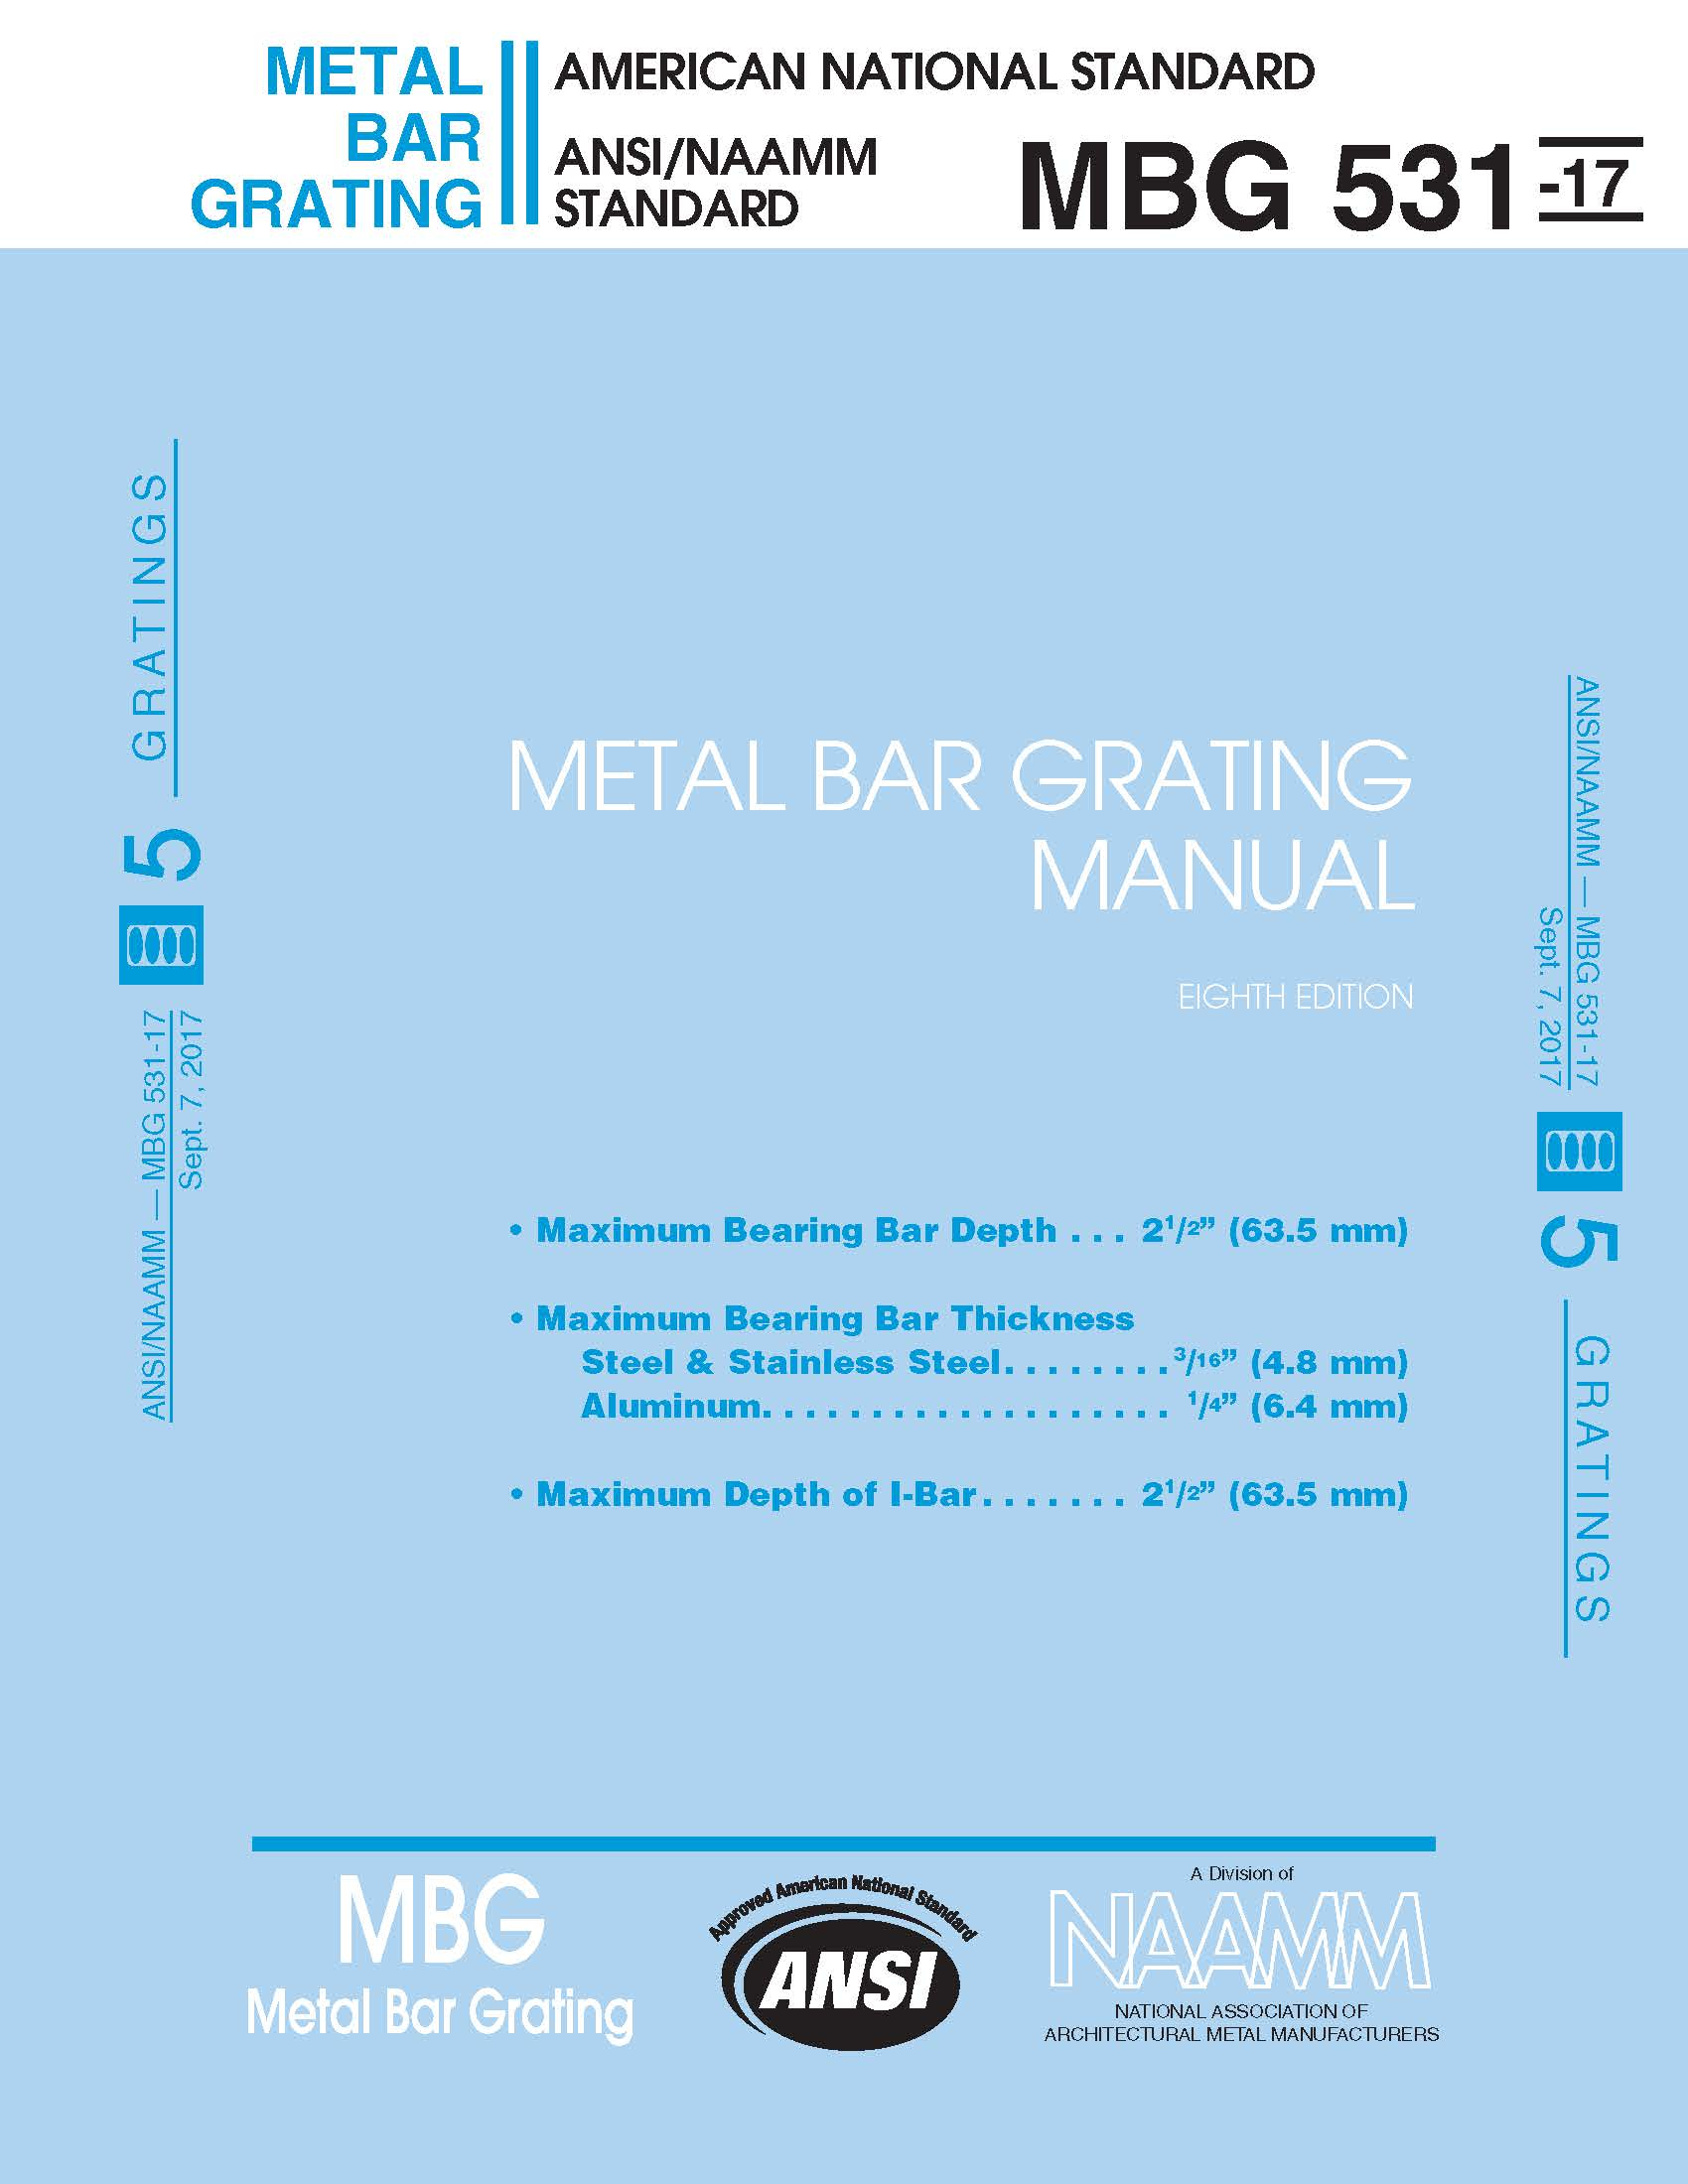 Publications - National Association of Architectural Metal